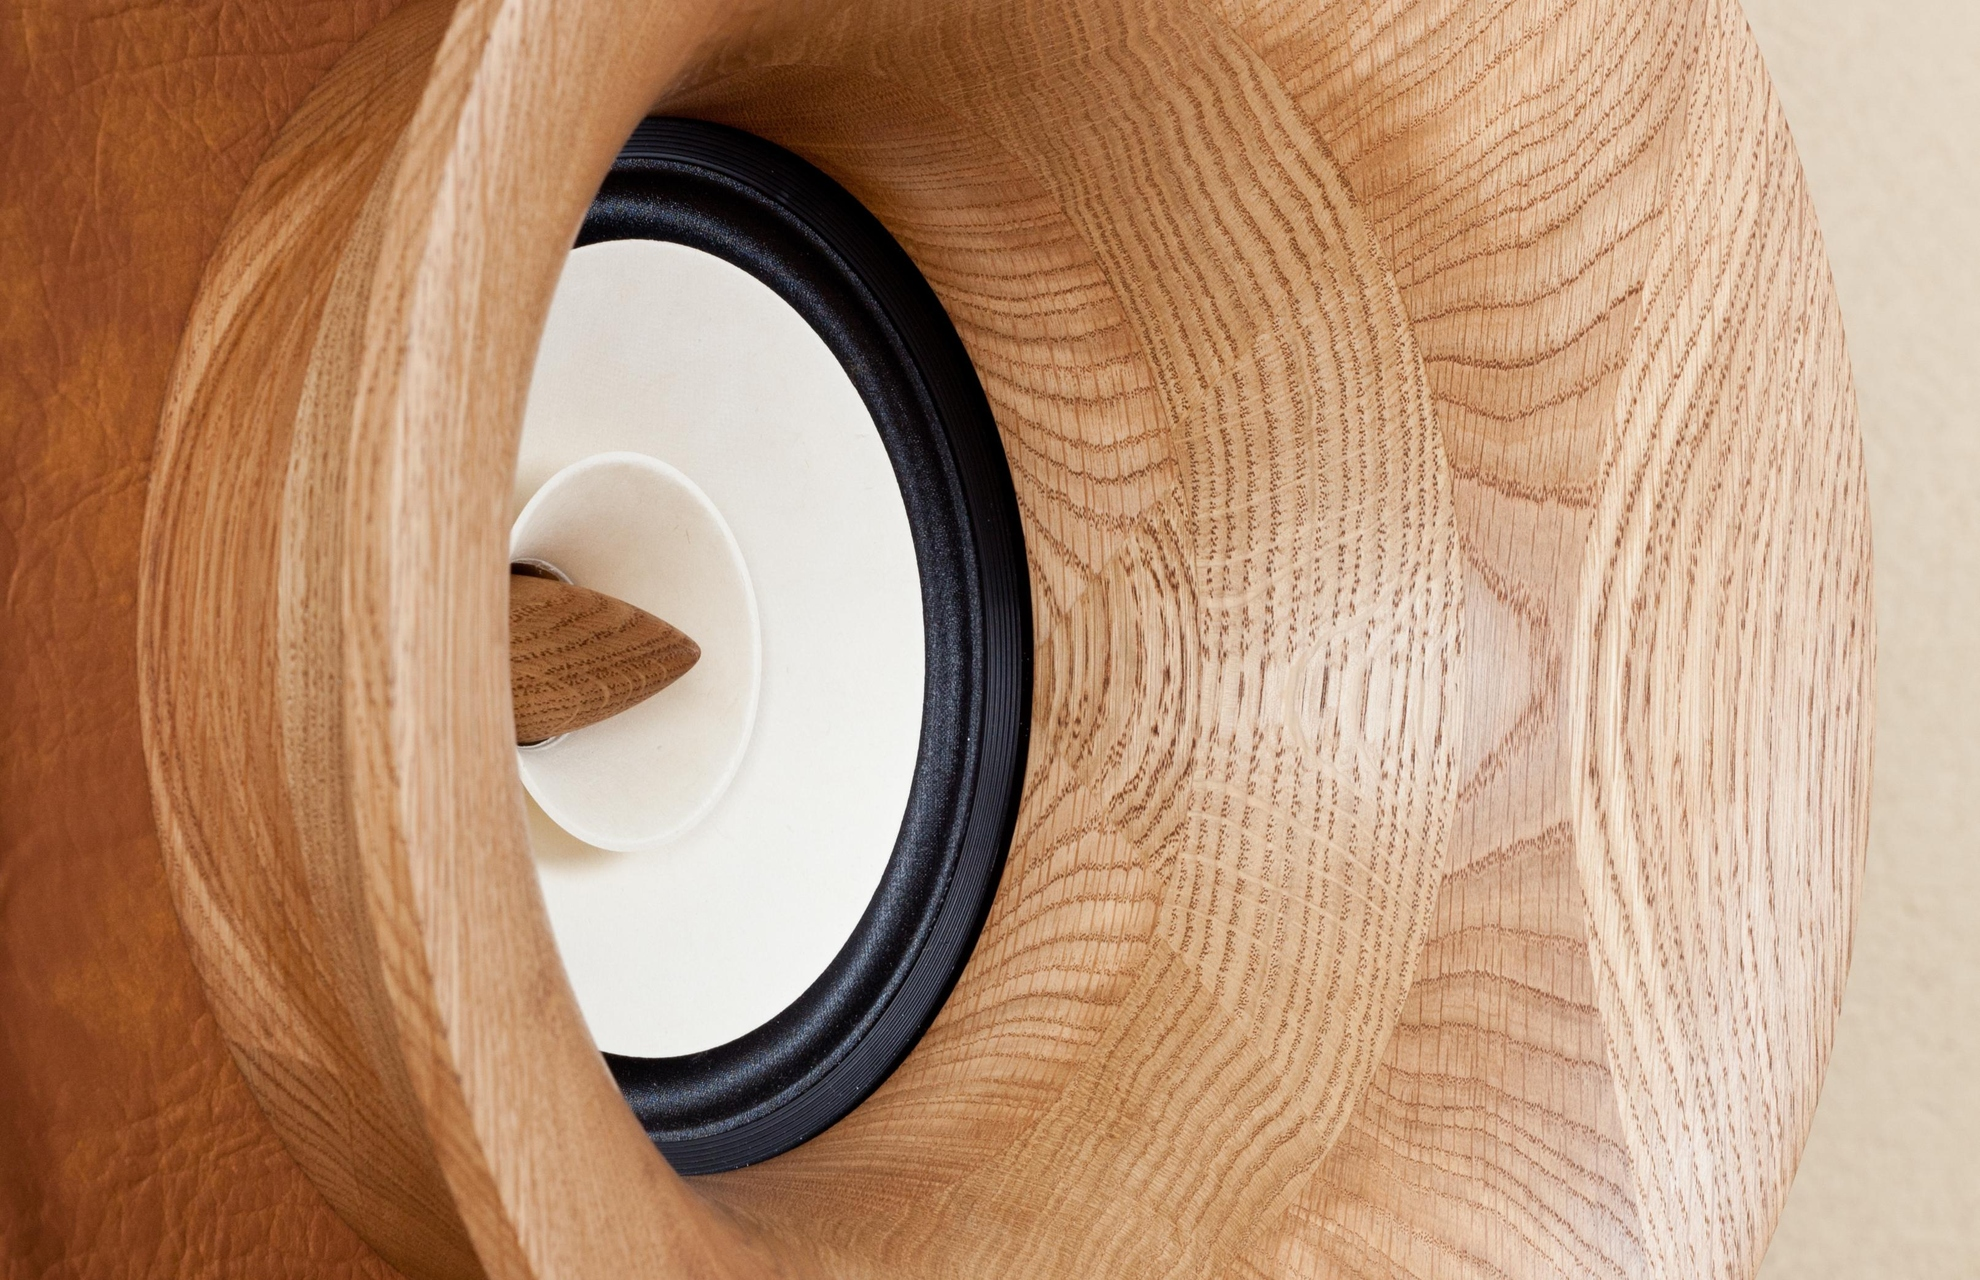 HIFI stereo speakers Evolution, front real wood horn. Home audio for audiophiles.